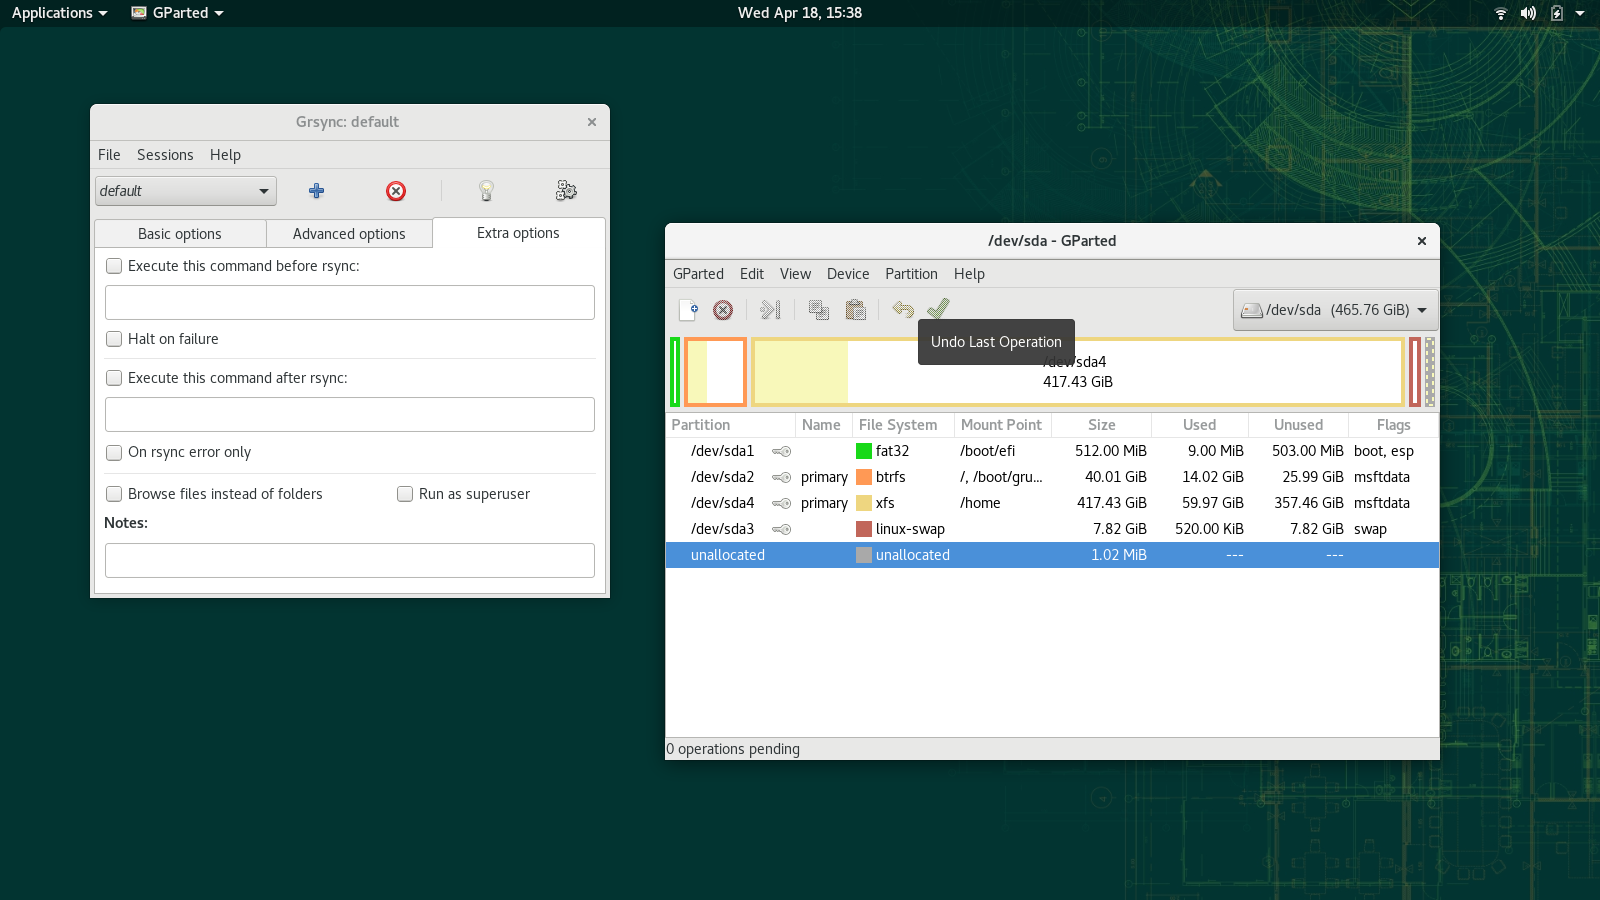 File:GNOME resque tools 15.0.png